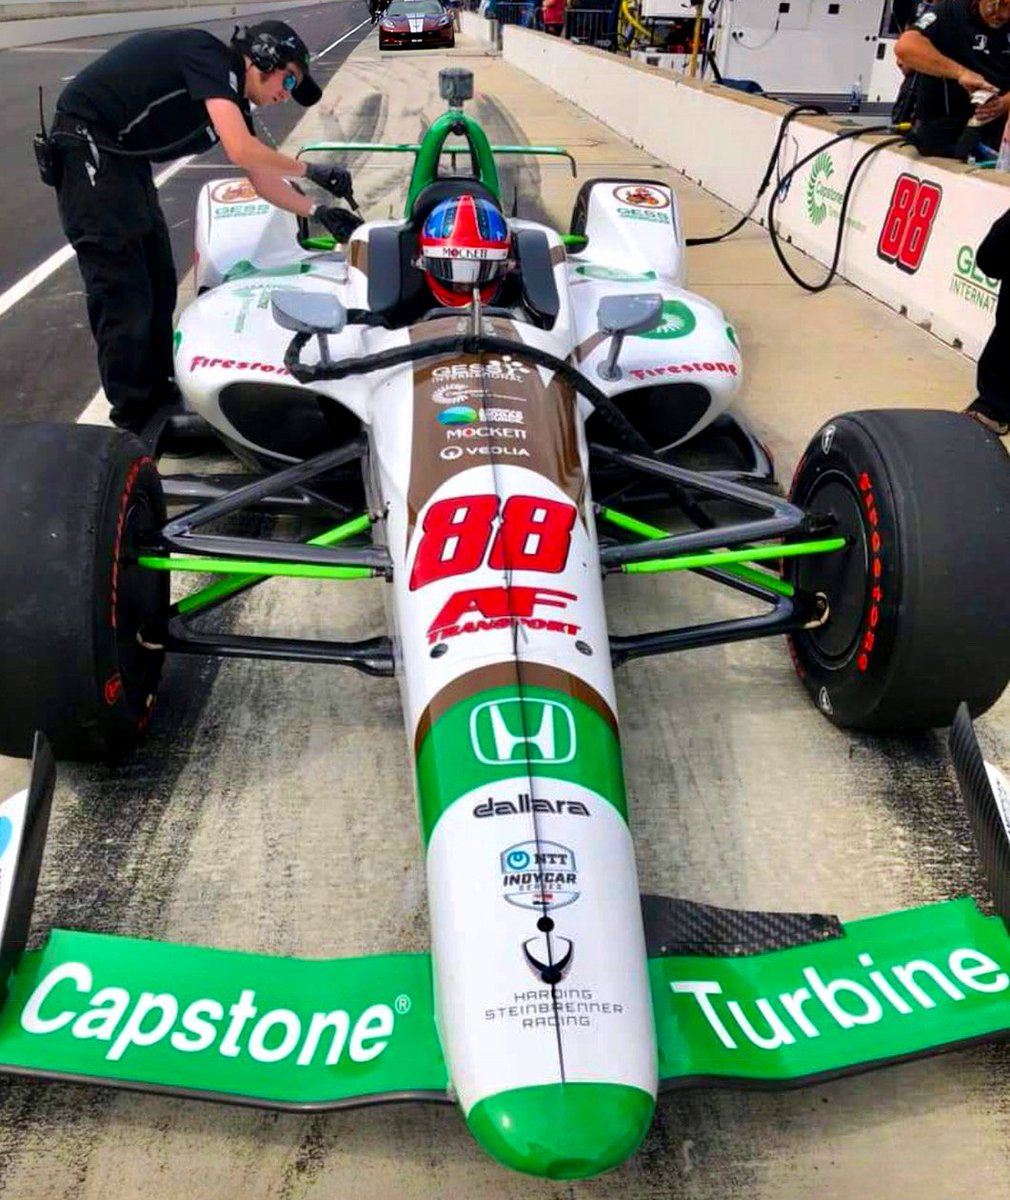 .@CapstoneTurbine is proud to sponsor the #88 Honda-Powered Indy Car and young phenom @ColtonHerta with @GESSUS1 and @FollowHSRacing at the upcoming #Indy500. Raising environmental awareness of #biogas and #RNG. $CPST #ThisIsMay